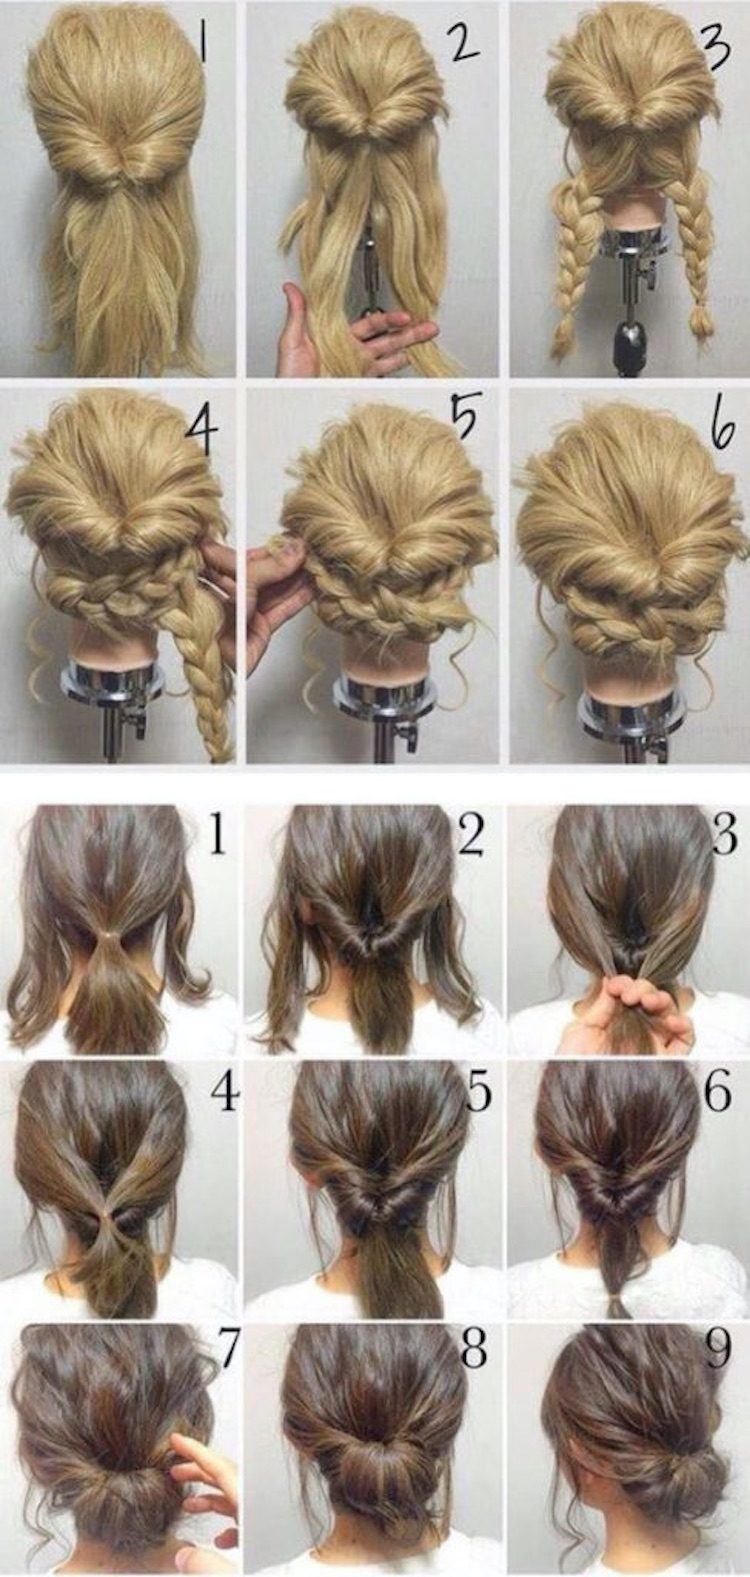 Best 60 Diy Cool Hairstyles You Can Do At Home Page 2 Chic Cuties Blog Easy Hairstyles Diy Hairstyles Diy Hairstyles Easy